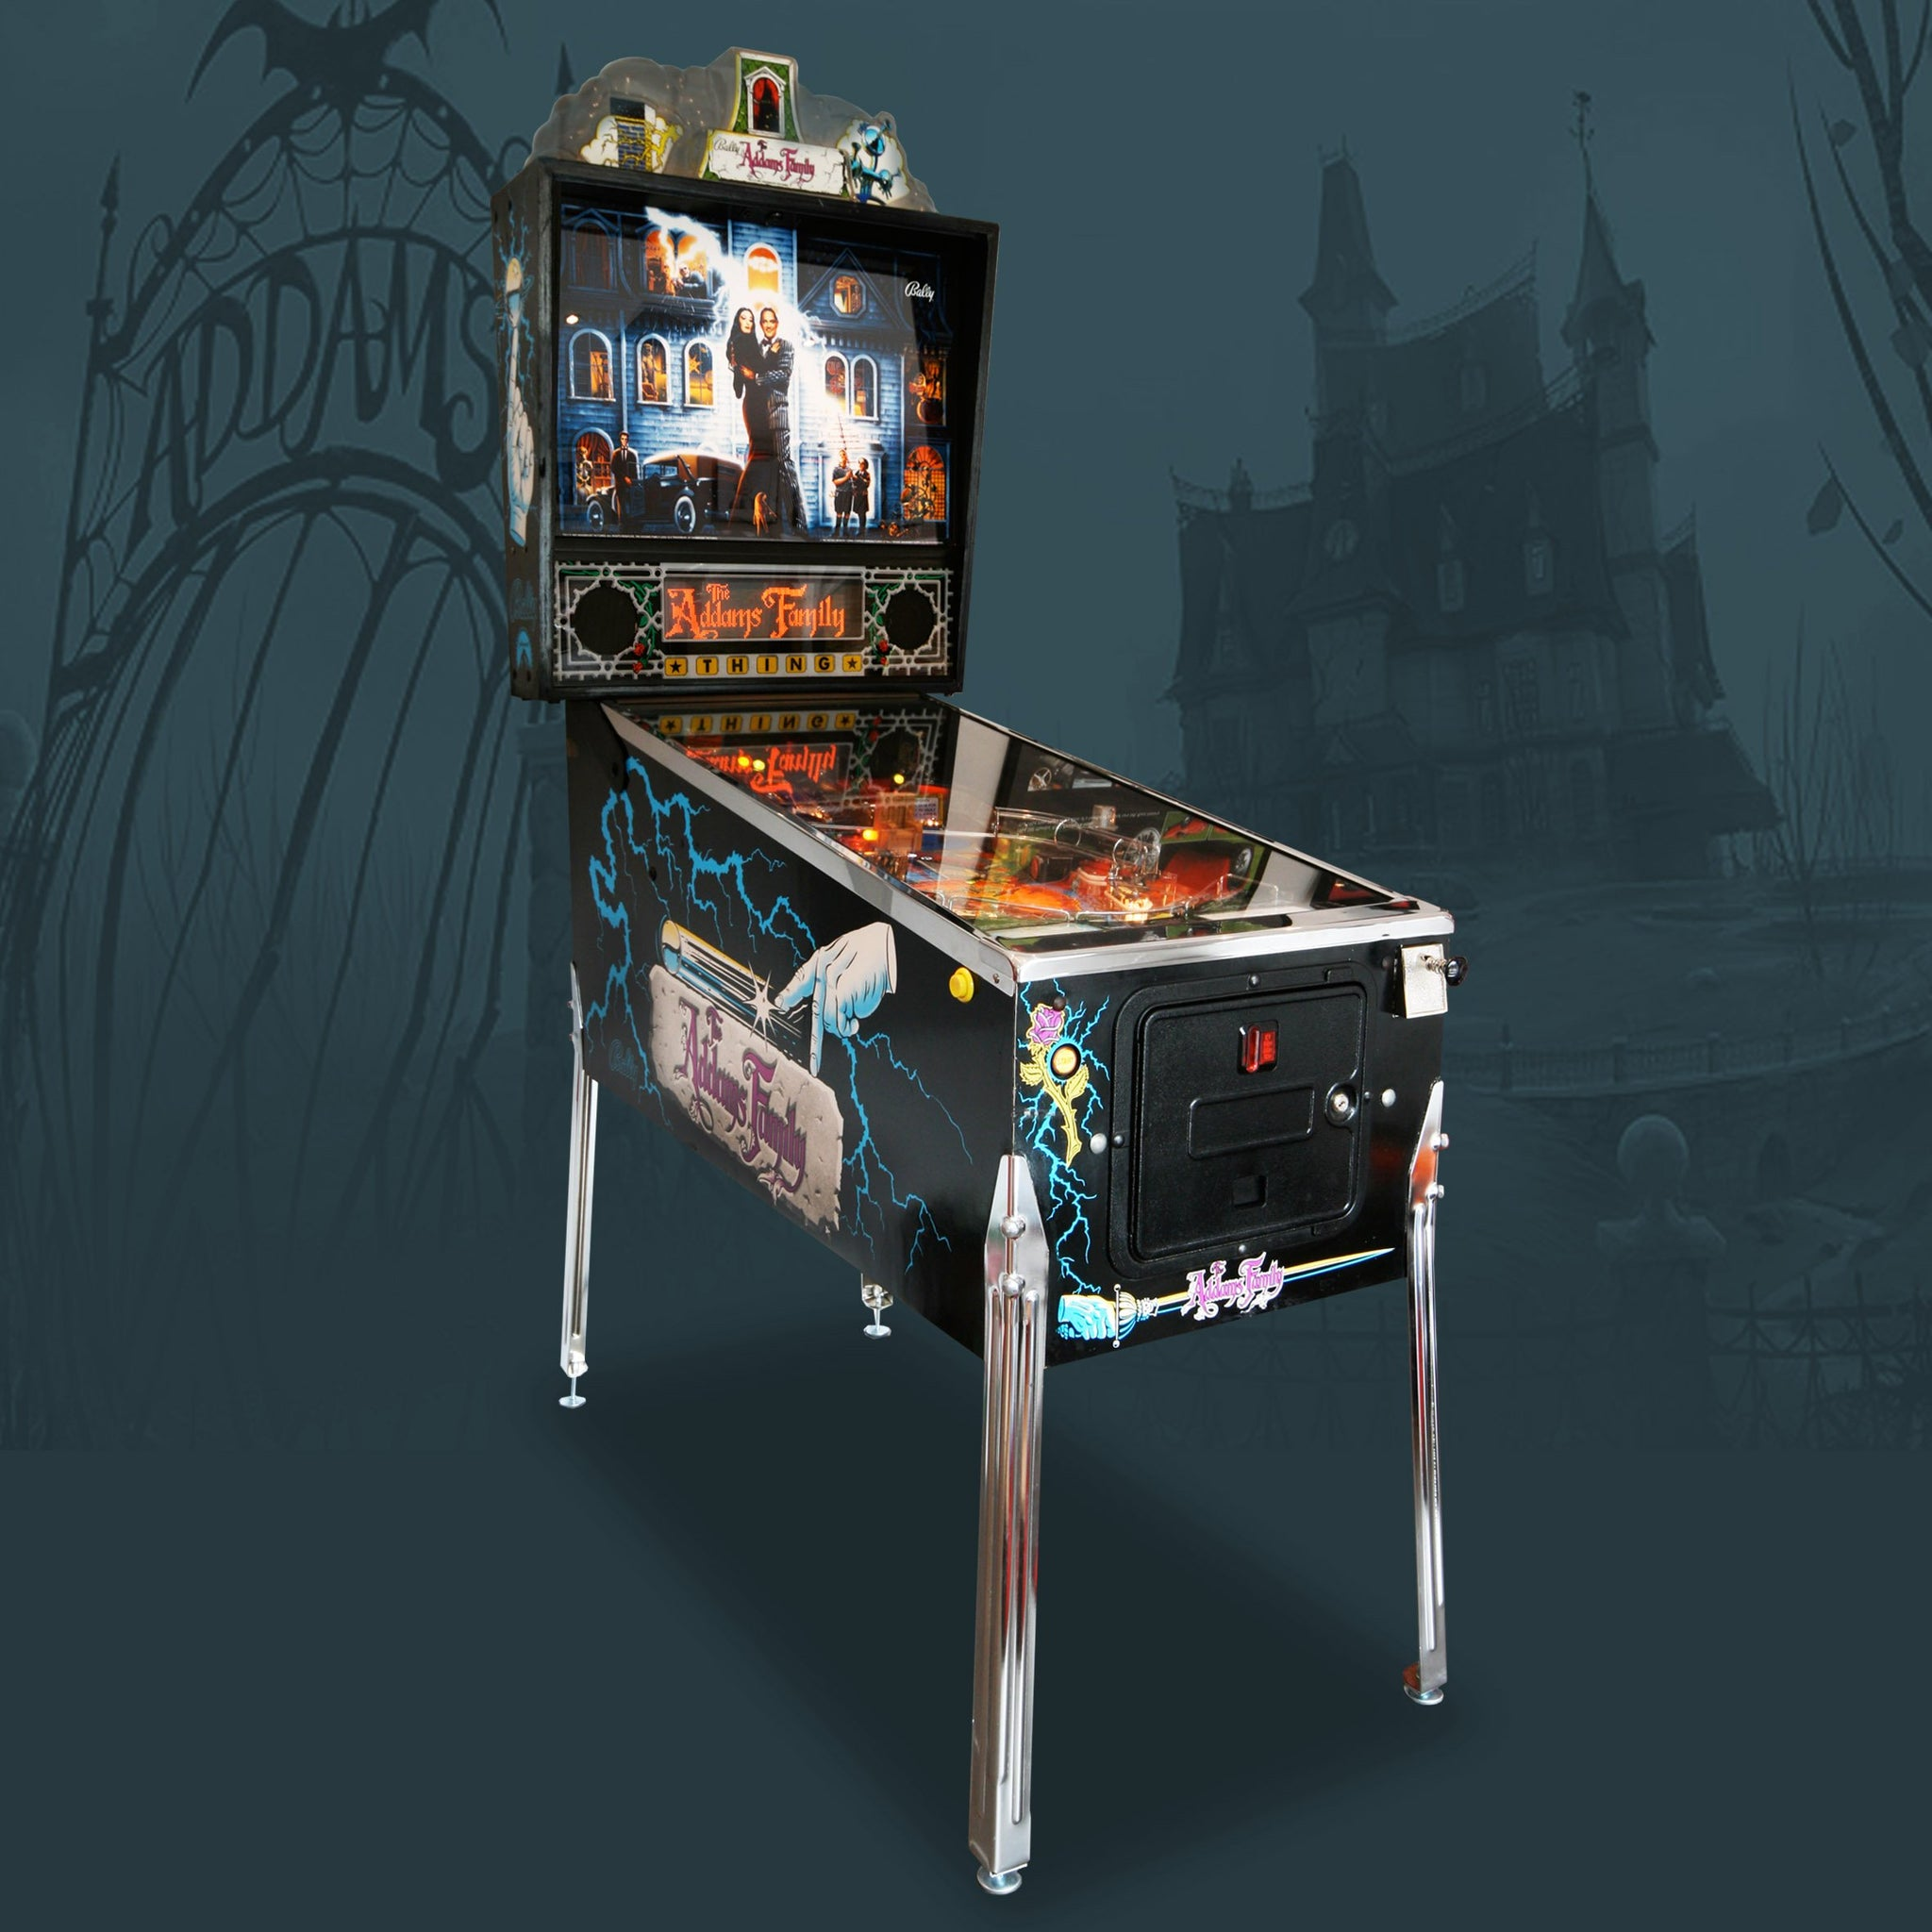 1992 Addams Family Pinball Machine by Bally